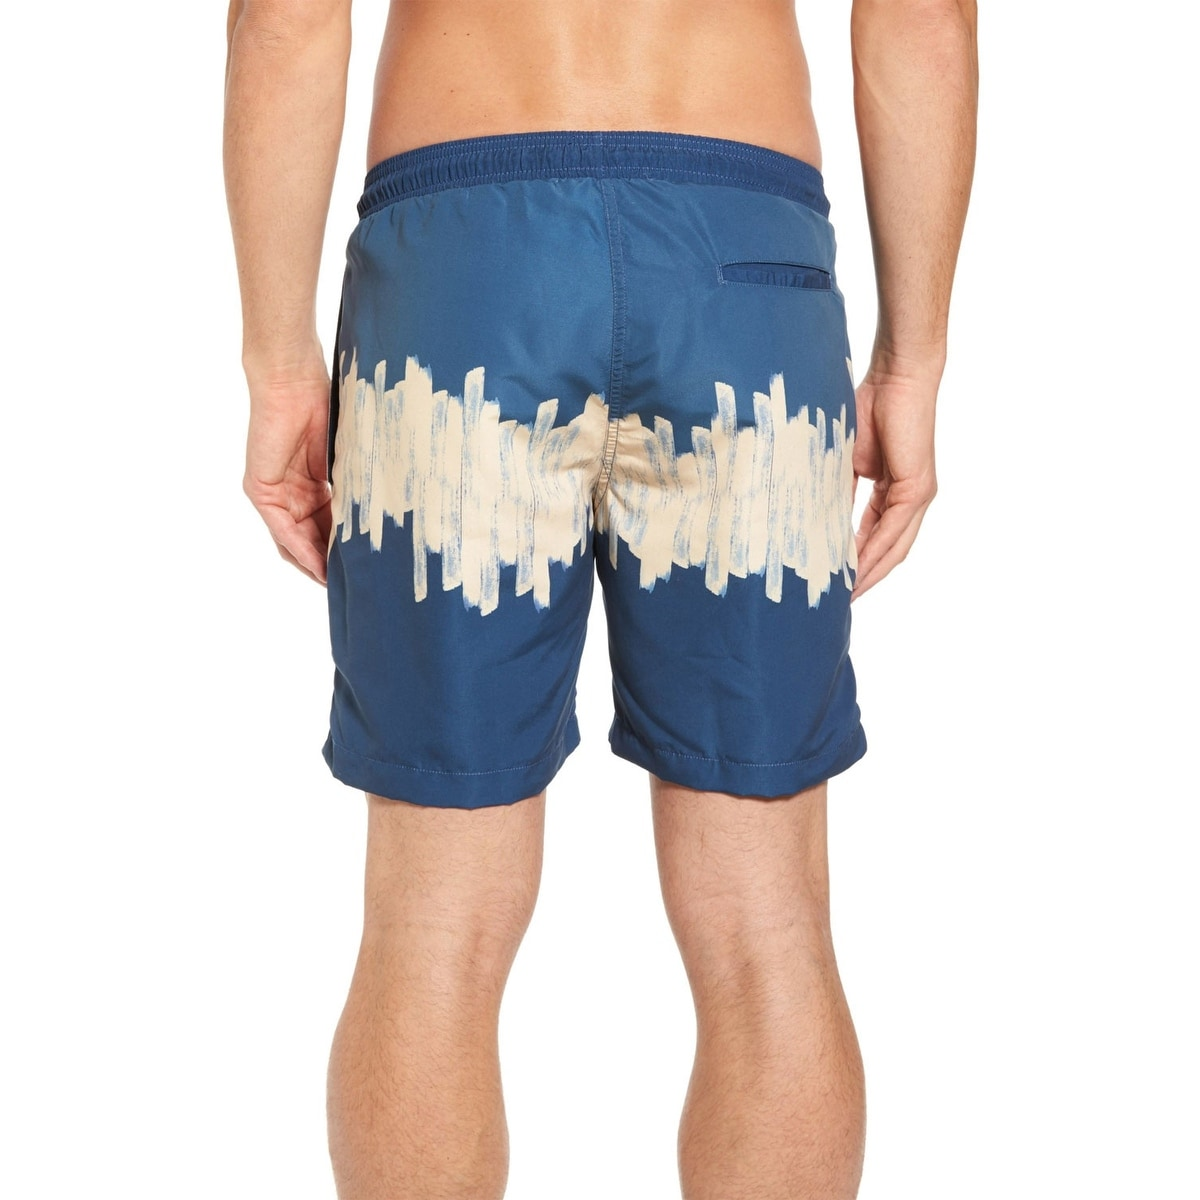 0f3037691c17a Shop Vestige Men's 3 Block Swim Trunks X-Large XL Tan and Blue Swimsuit -  Free Shipping Today - Overstock - 26266921